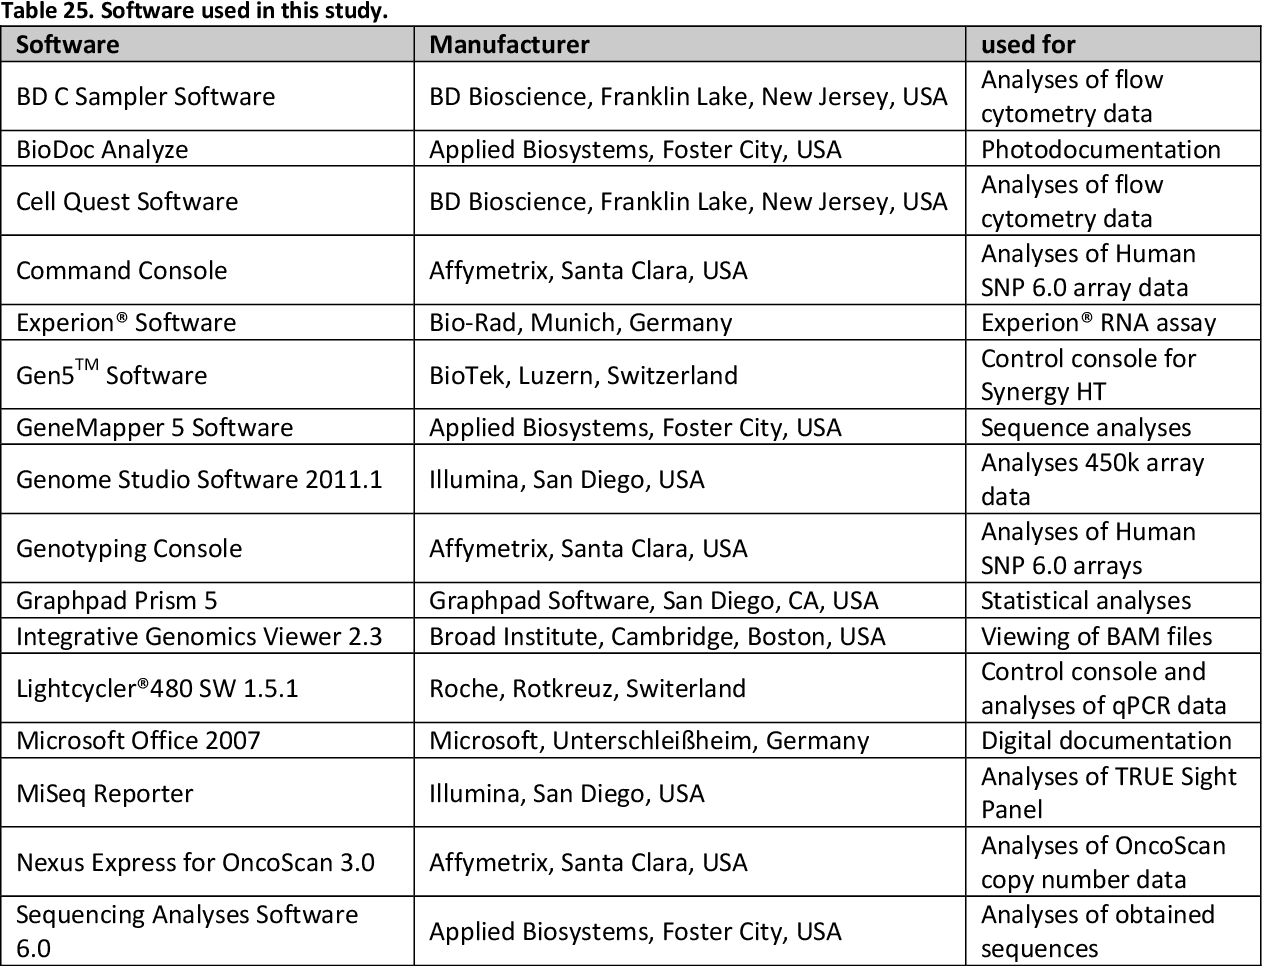 Table 25. Software used in this study.